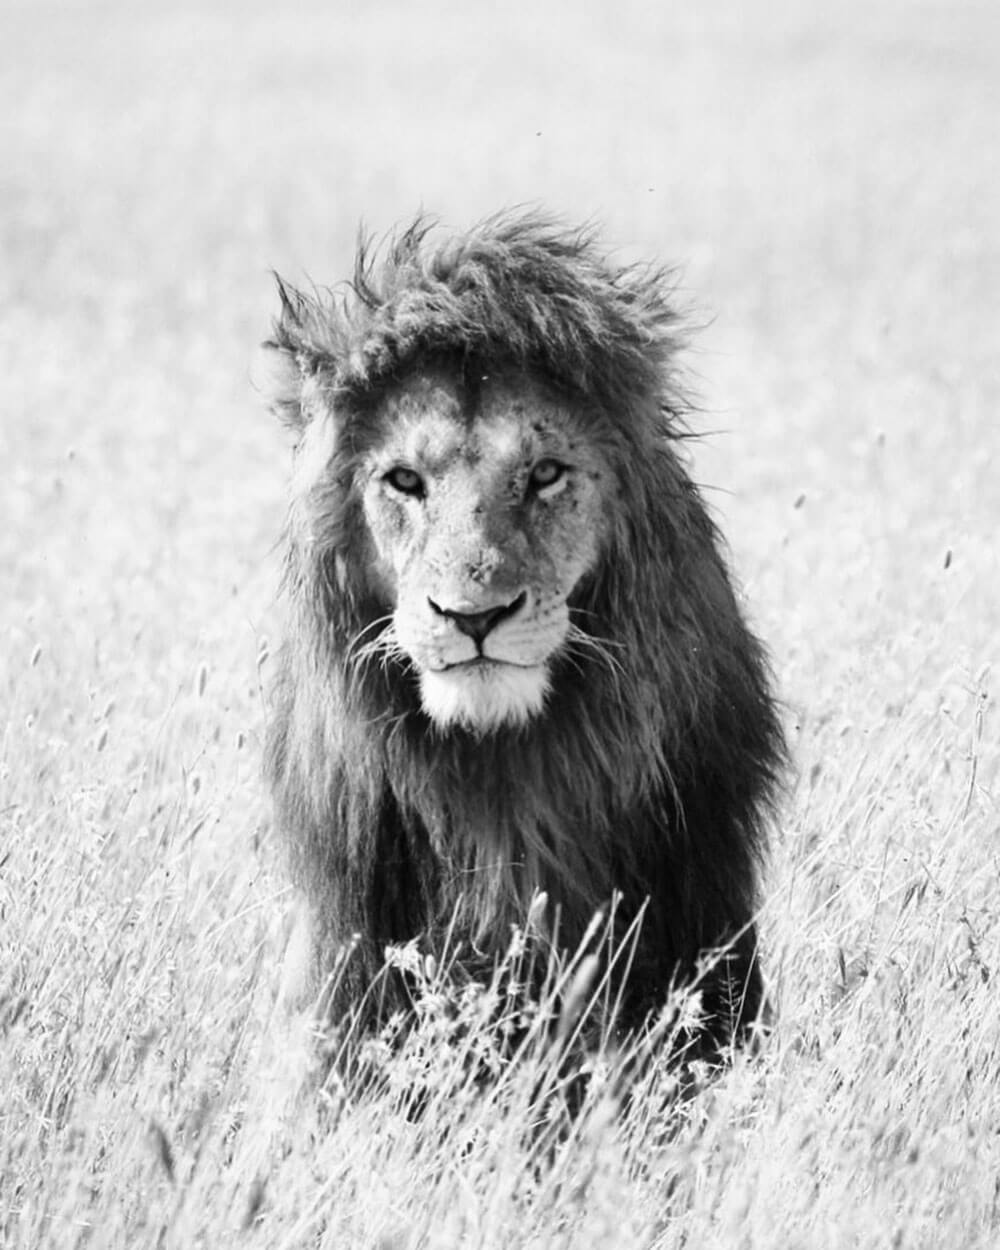 Black and white portrait image of Lion